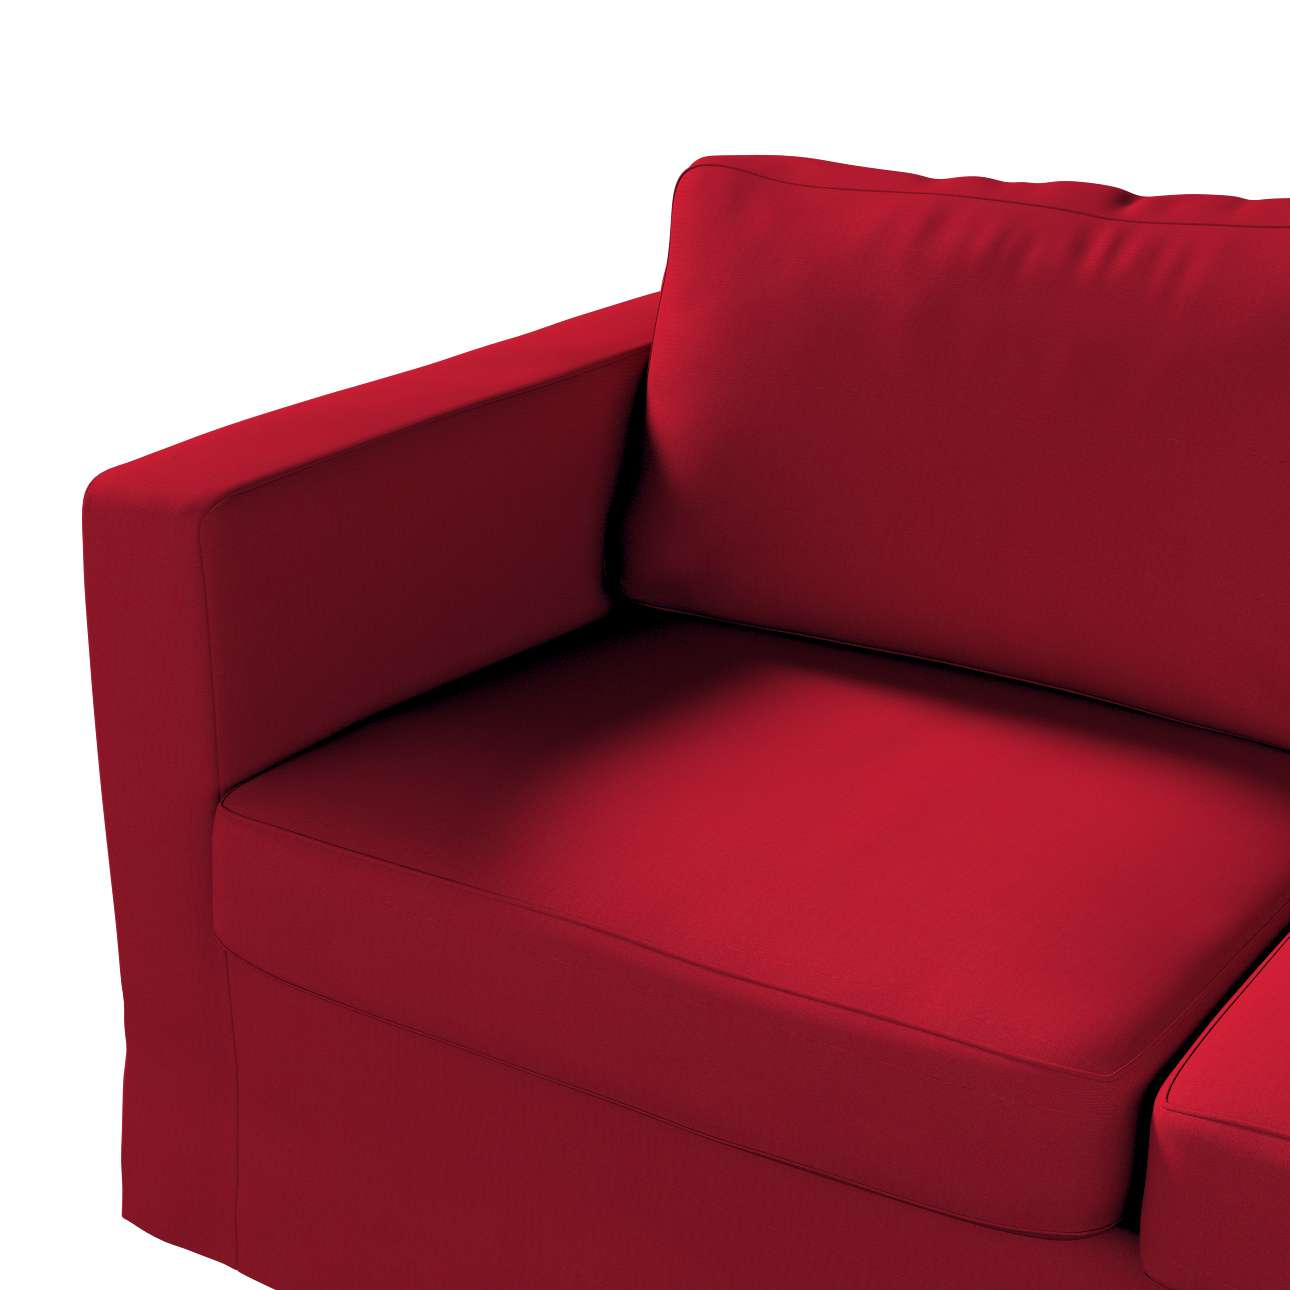 Floor length Karlstad 2-seater sofa cover in collection Etna, fabric: 705-60